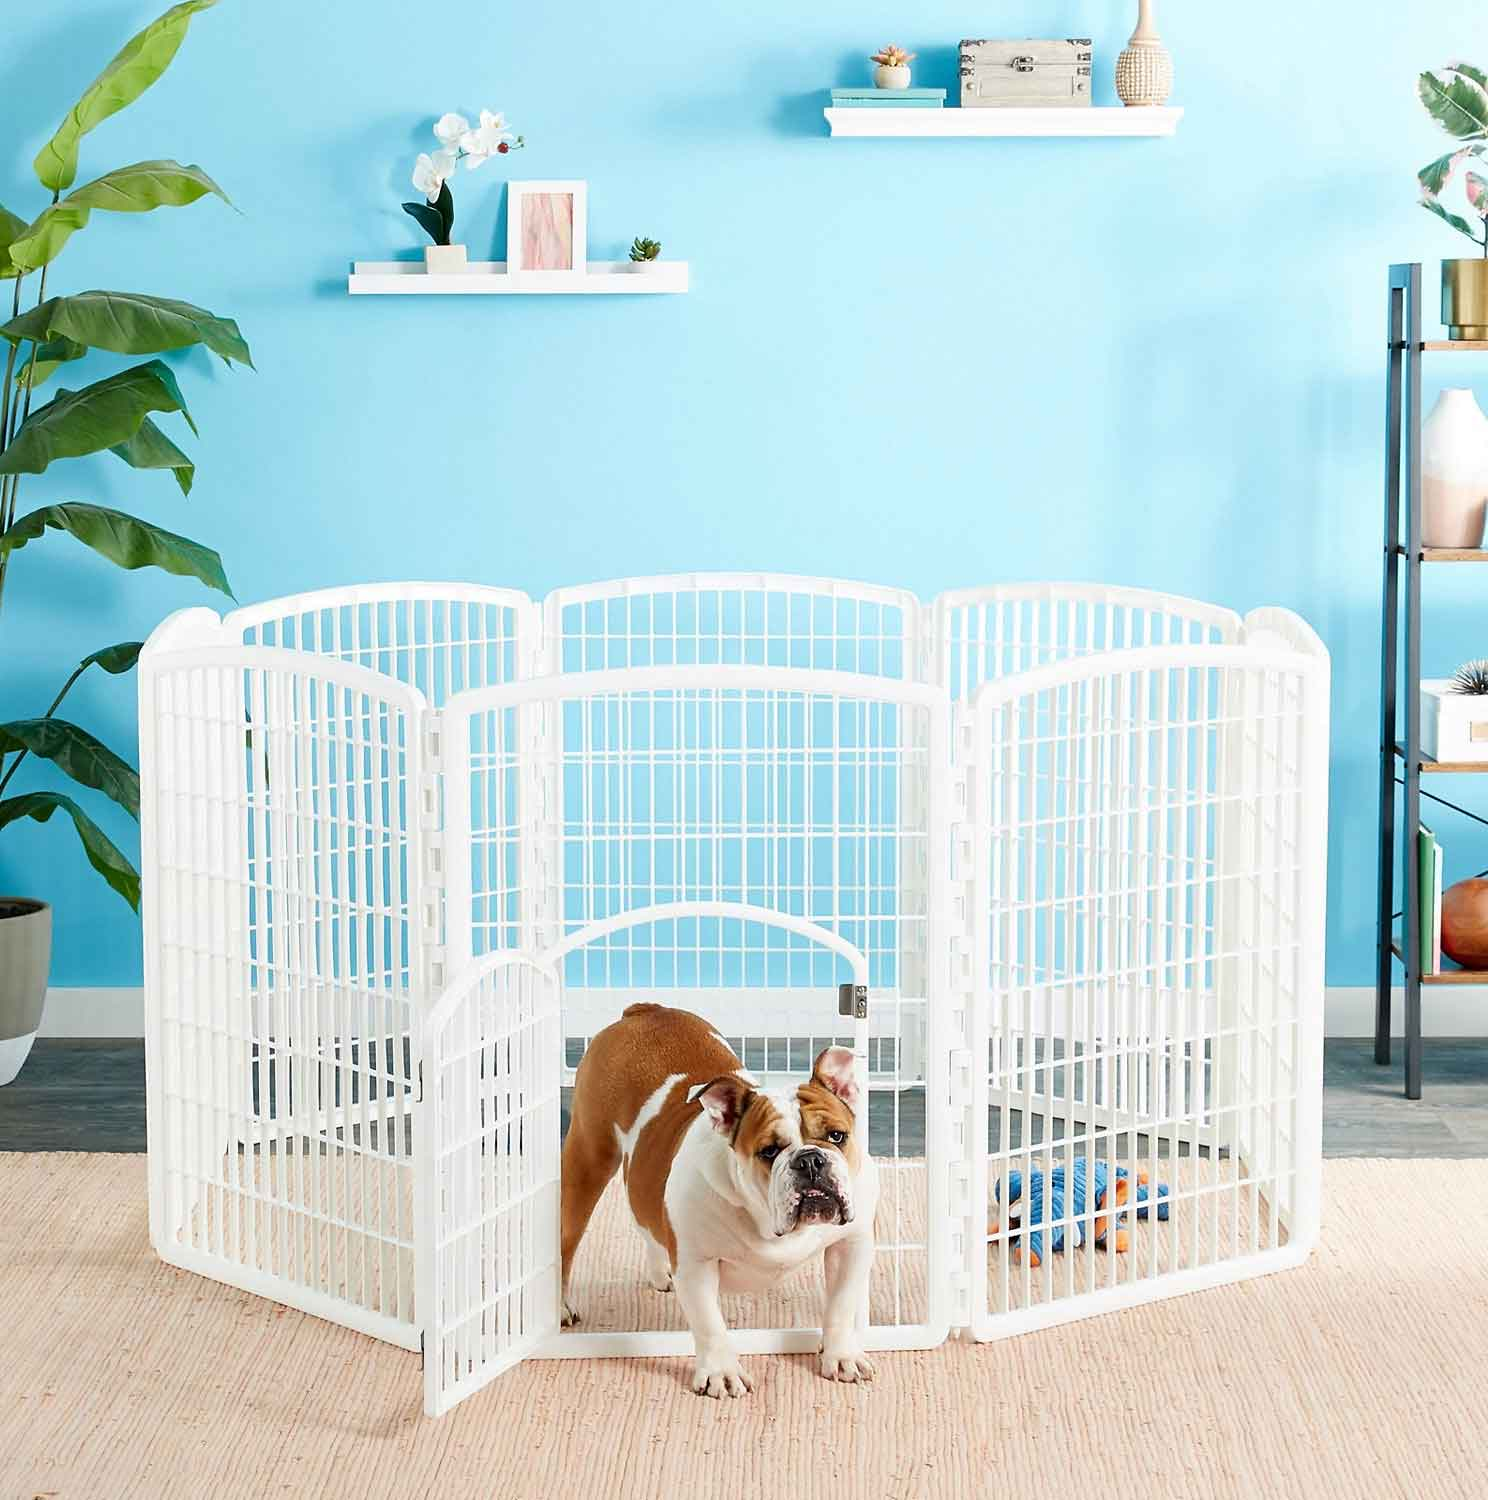 5 Indoor-Outdoor Simple And Cheap Fencing For Dogs | Roy Home Design